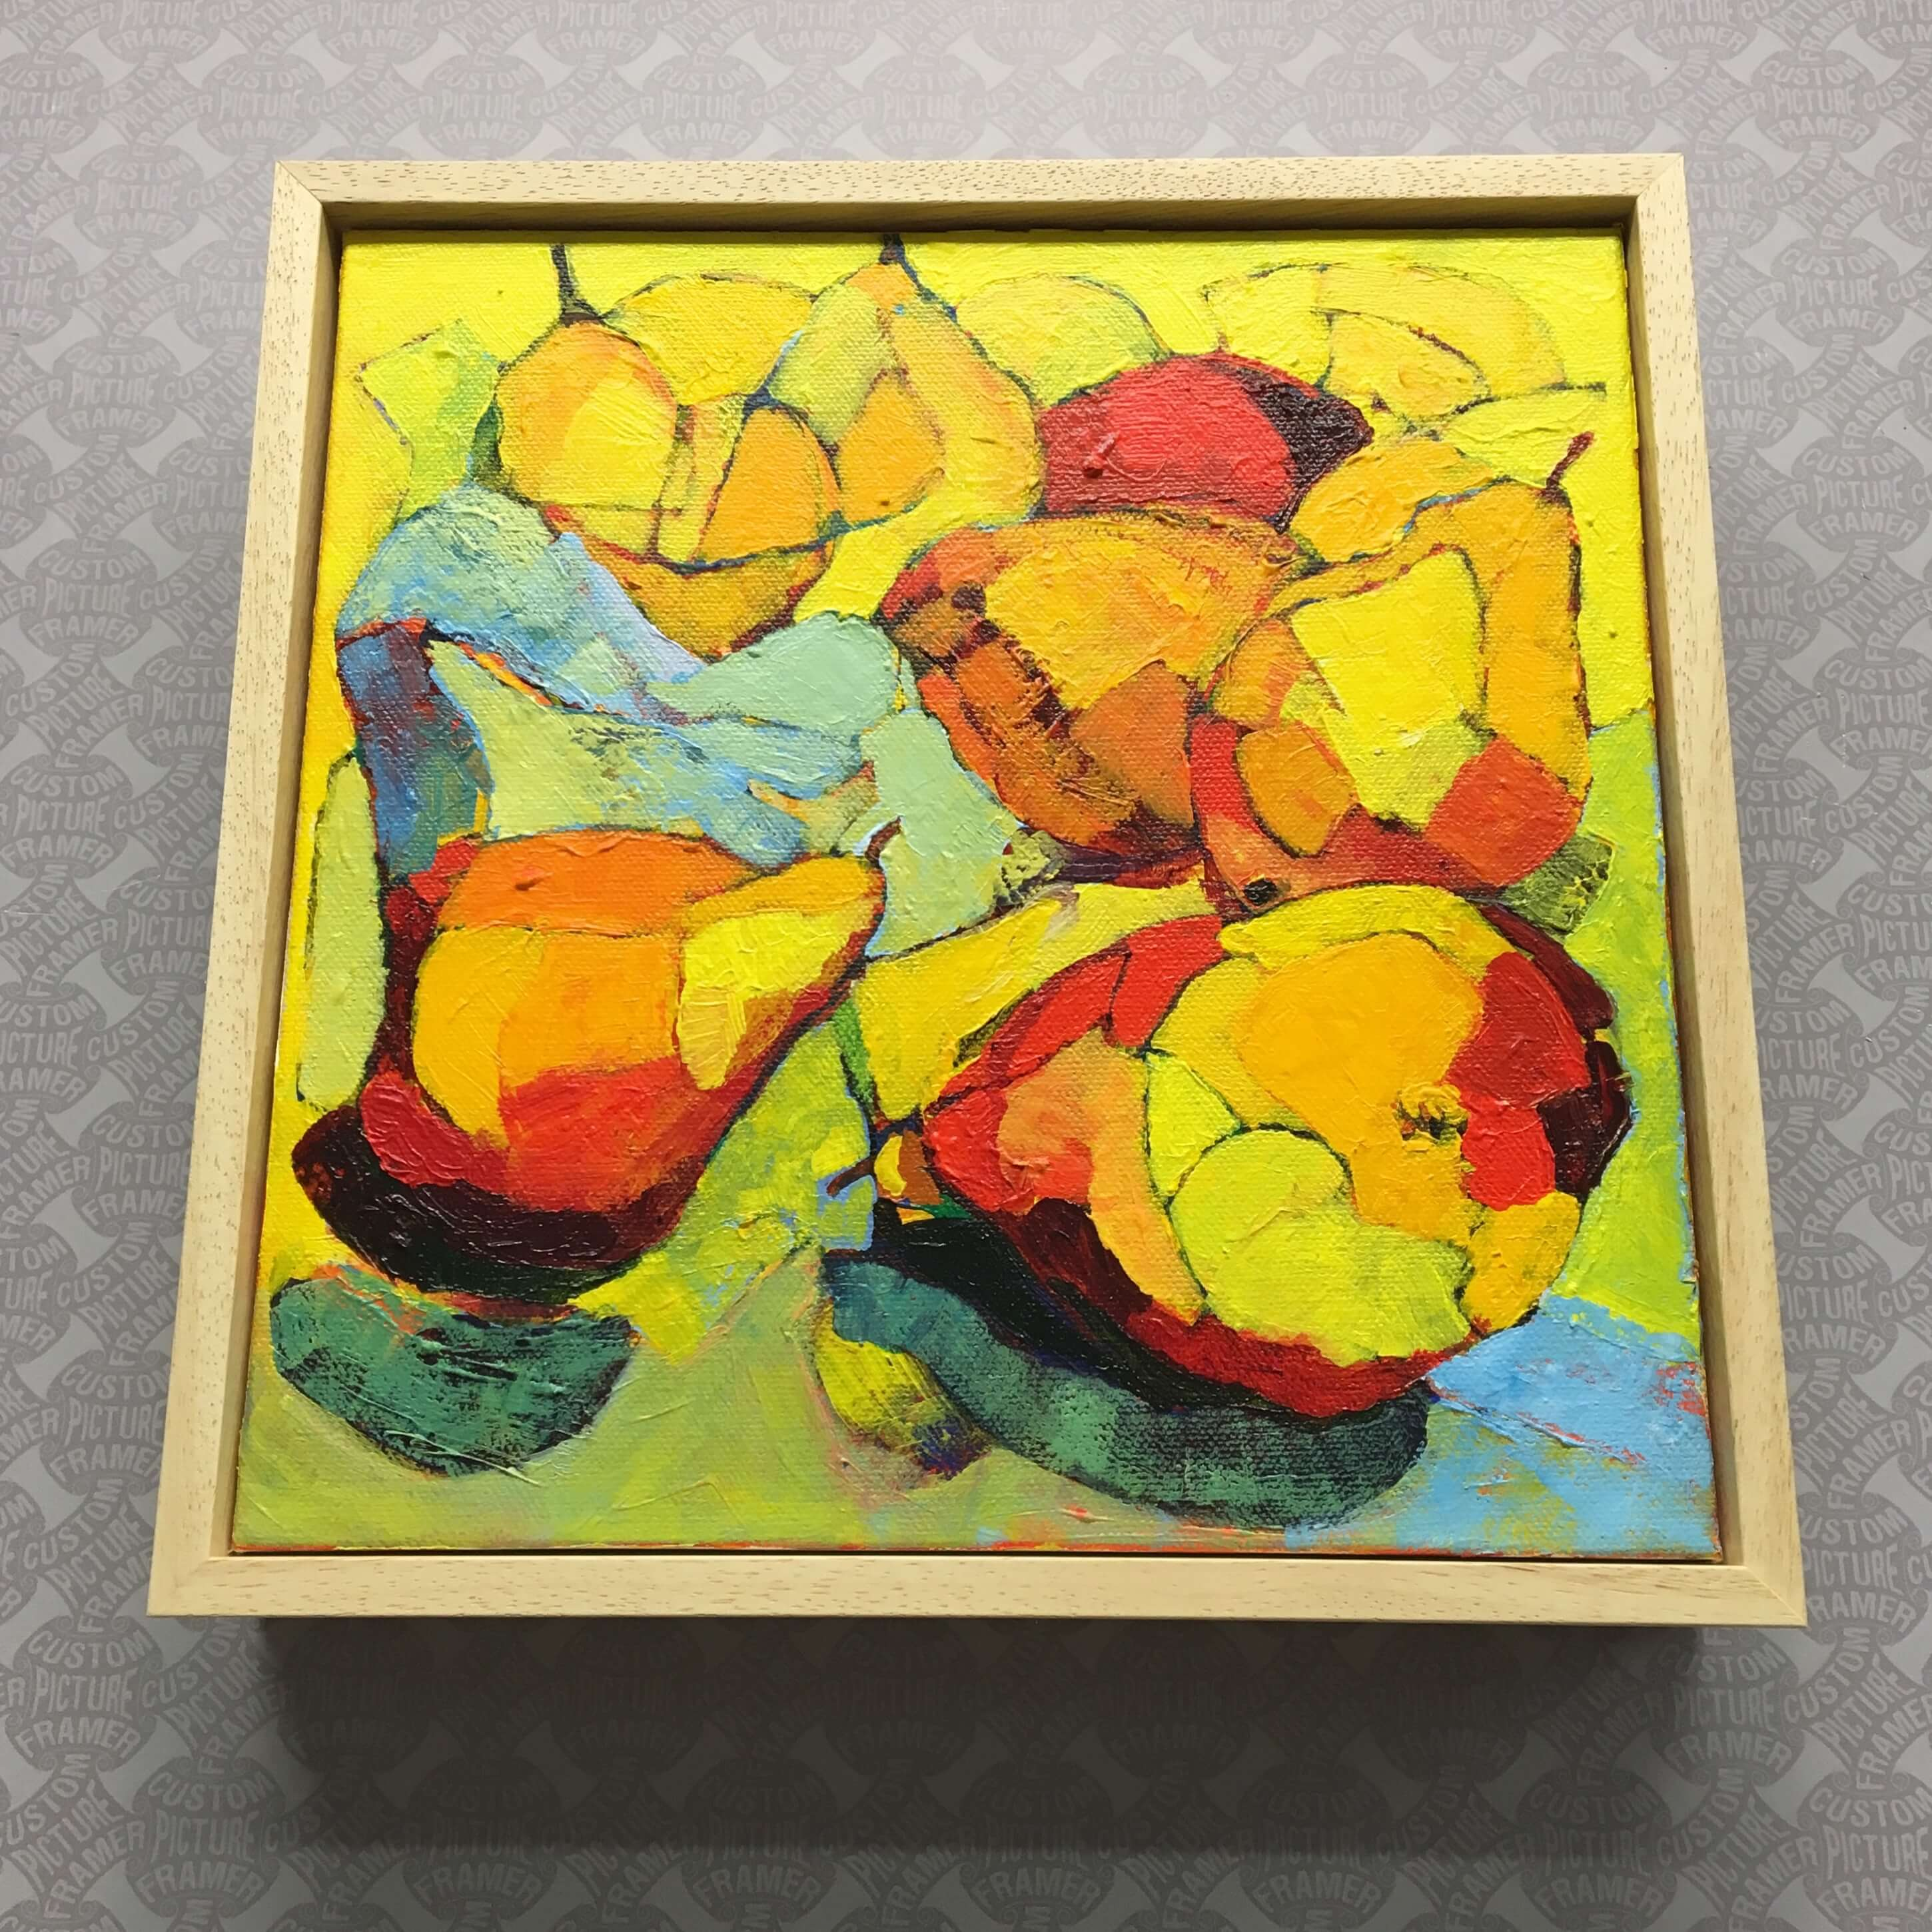 Acrylic on canvas by Ann Beatus -2019. Custom framed in a natural wood floater. See more custom framing options at our Keswick Village showroom located just north of Philadelphia in Glenside PA ( Pennsylvania ) , 19038 . Custom Picture Framer of Glenside carries several thousand frame styles, prints, maps, limited editions, mirrors, and more!